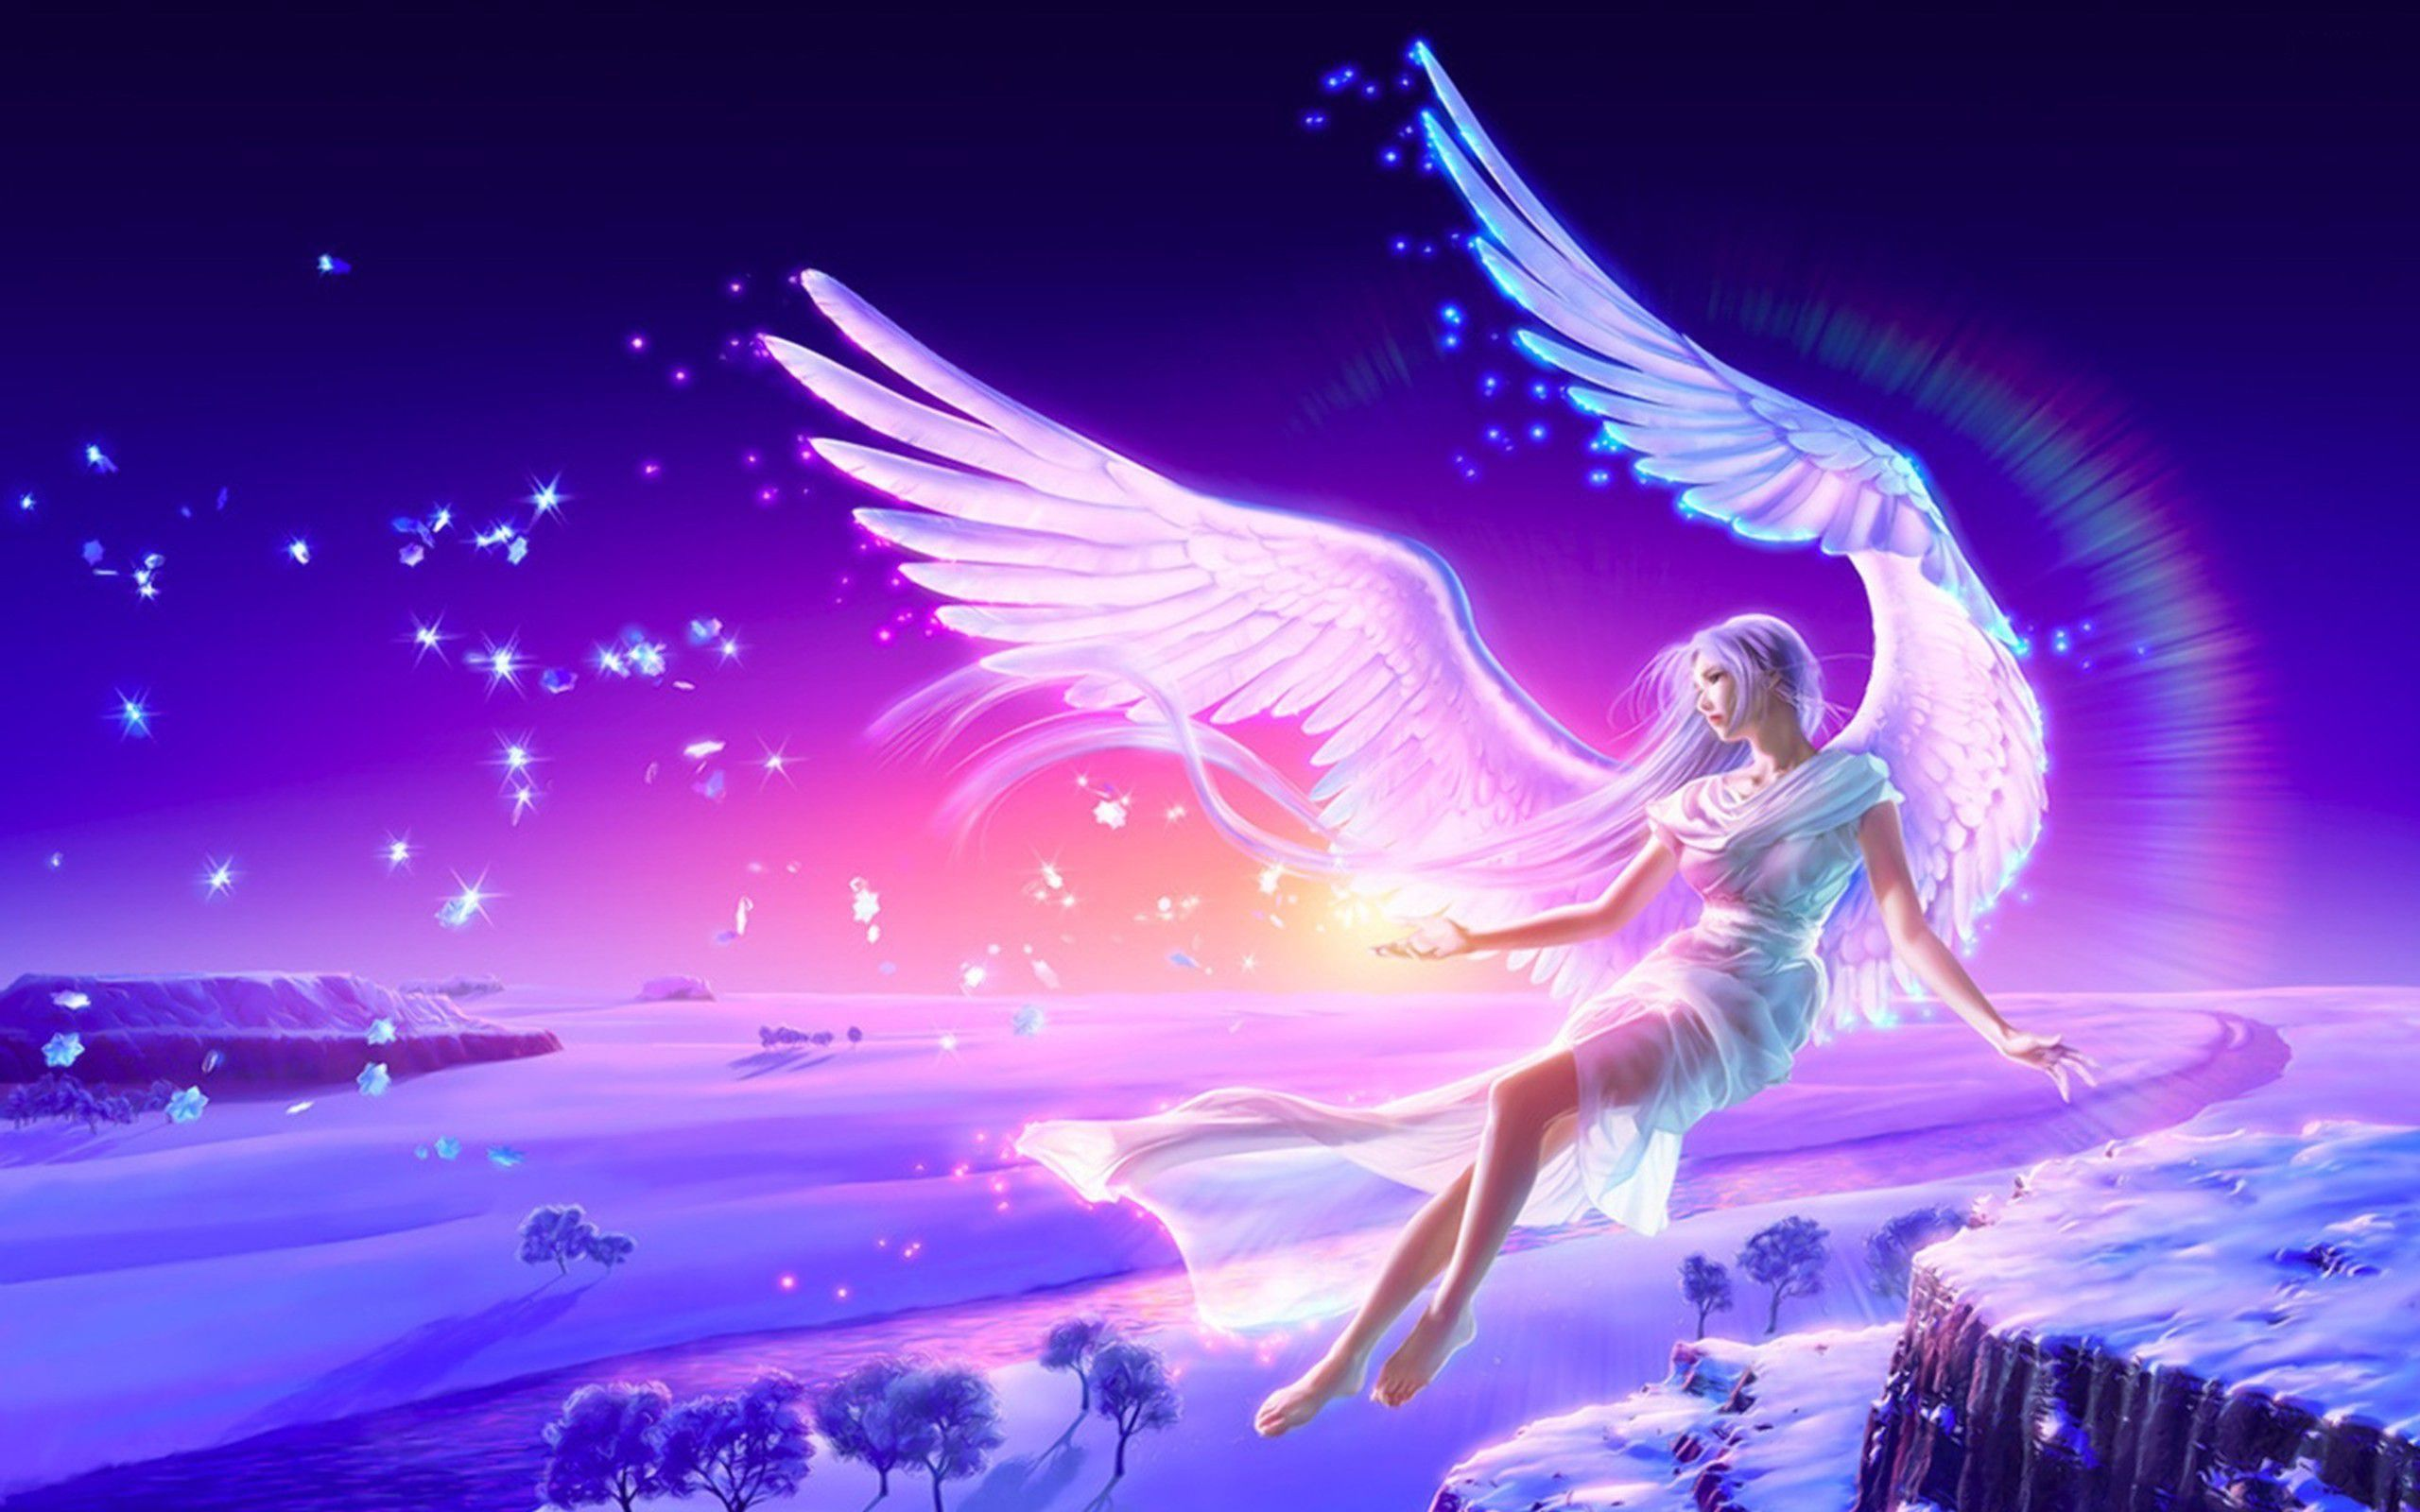 Anime Angels Wallpapers New Anime Angel Full HD